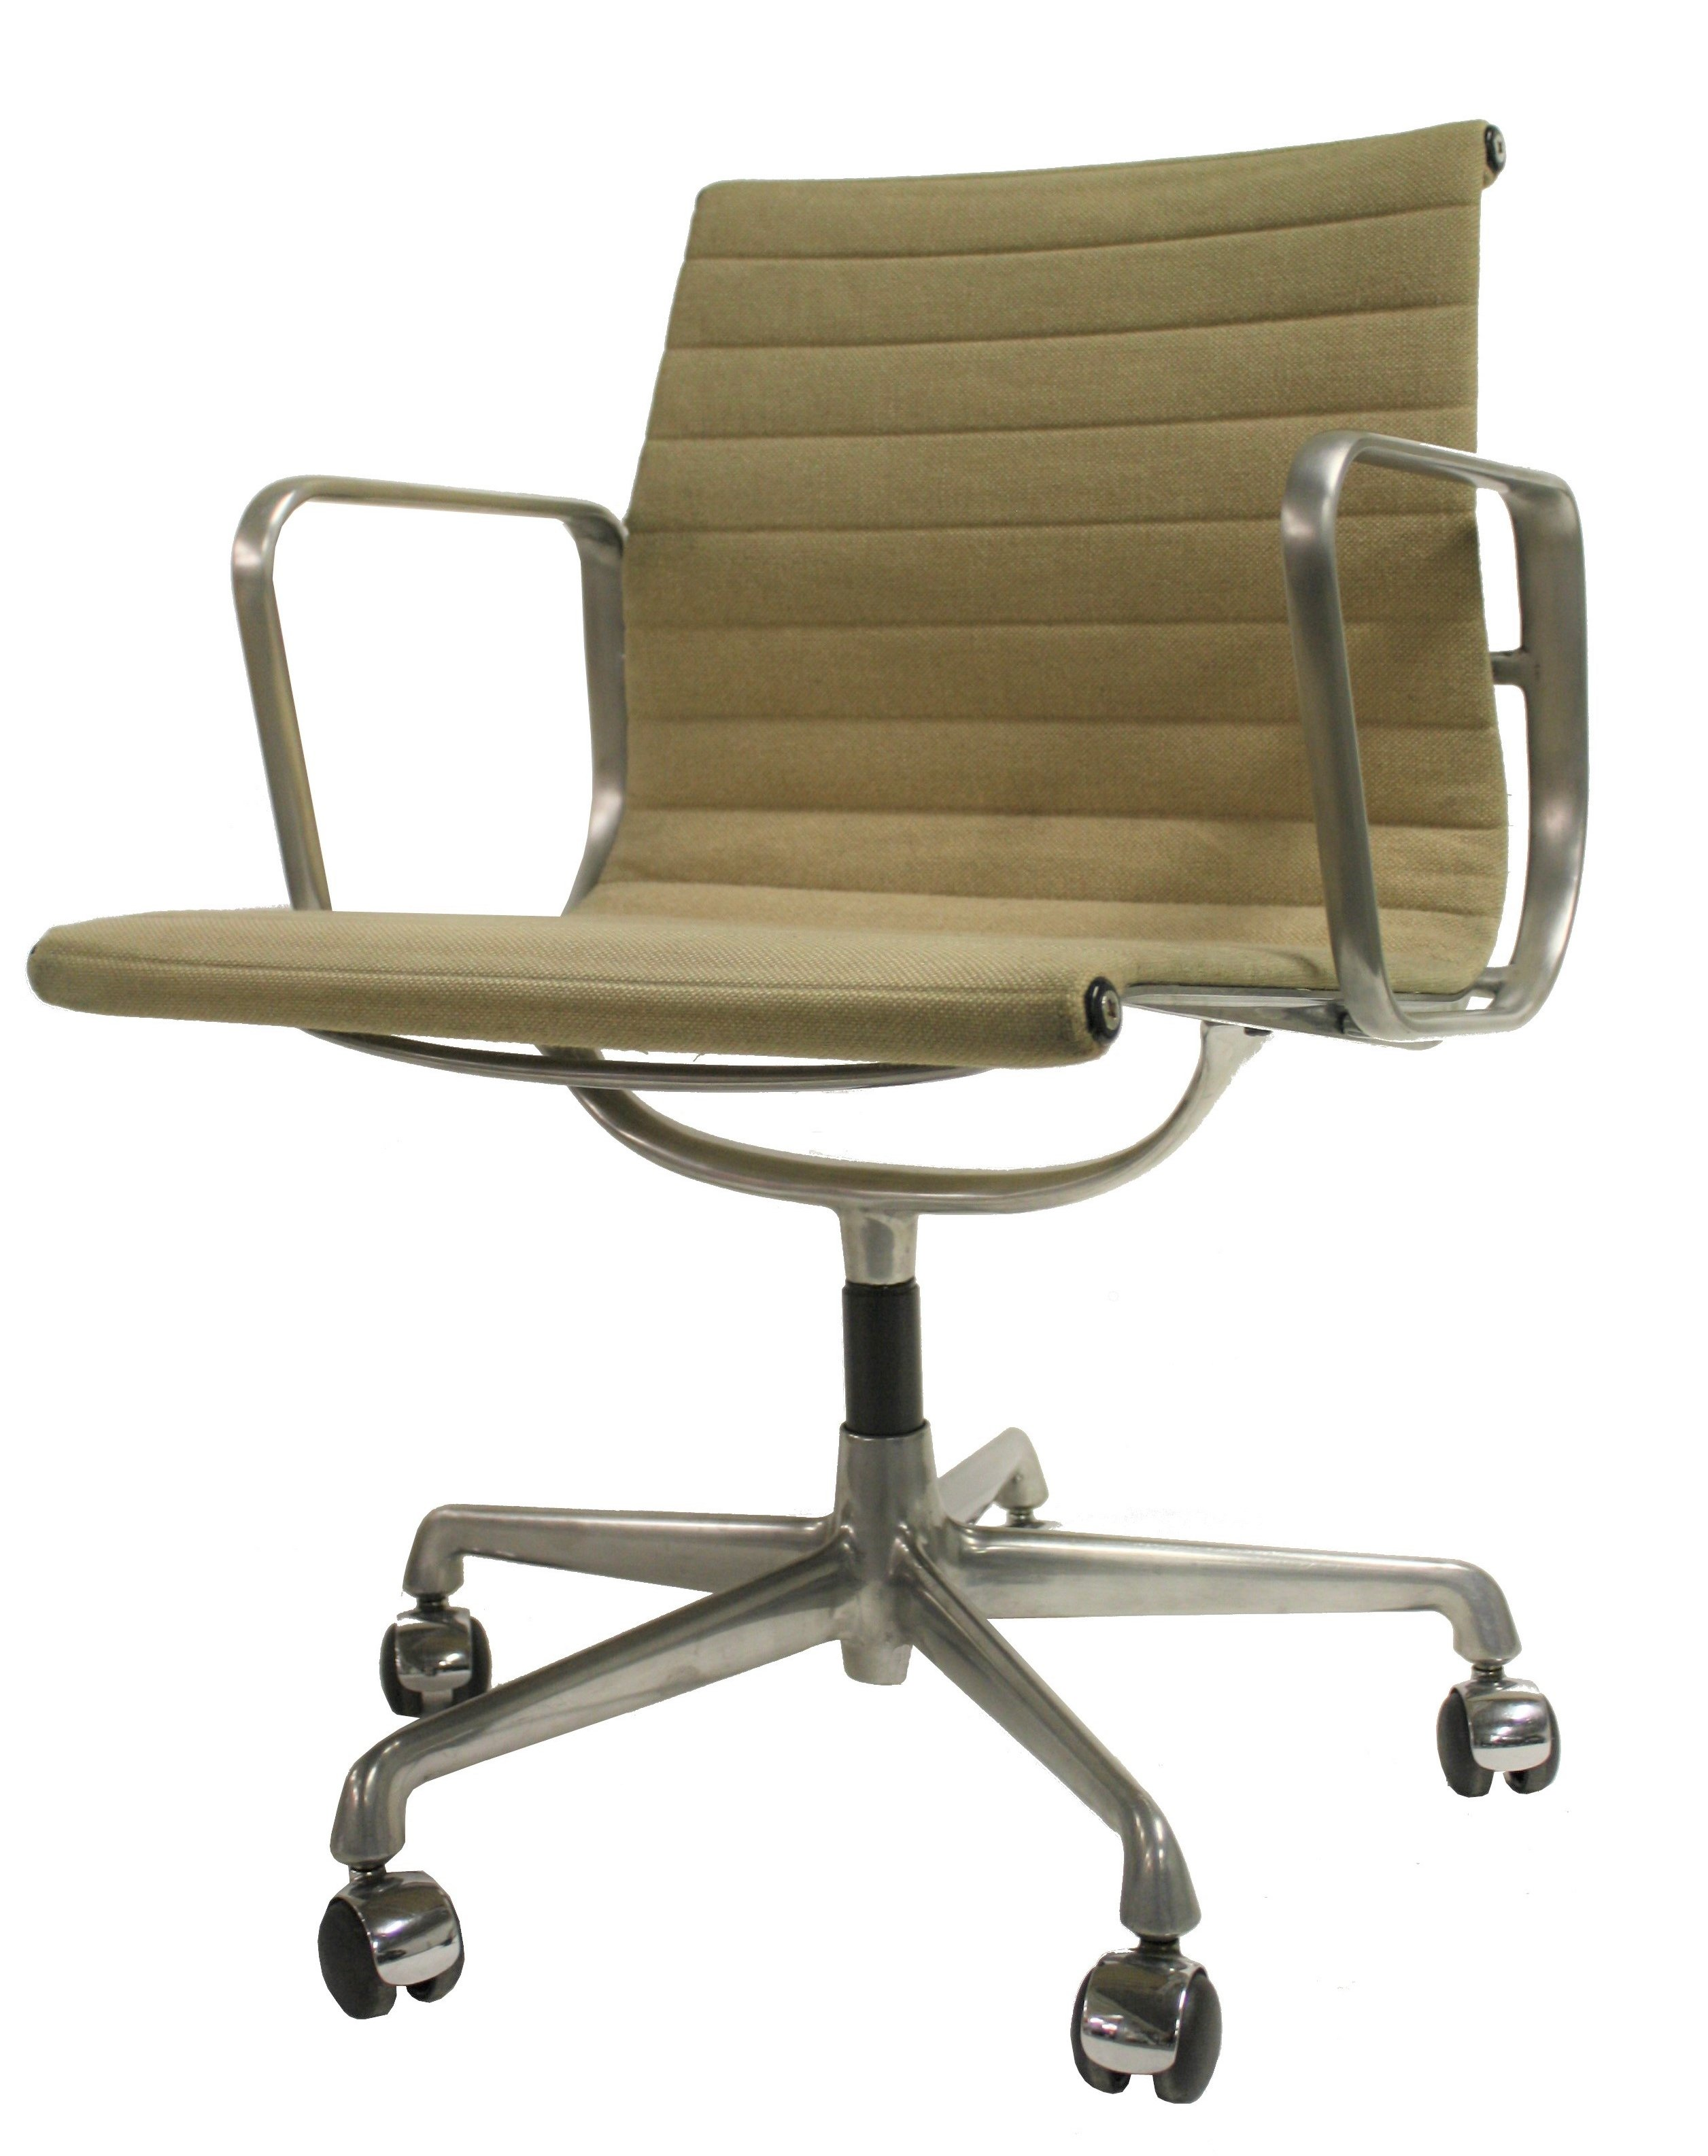 Herman Miller Eames Office Chair Eames Desk Chair For Herman Miller 1970s 80573